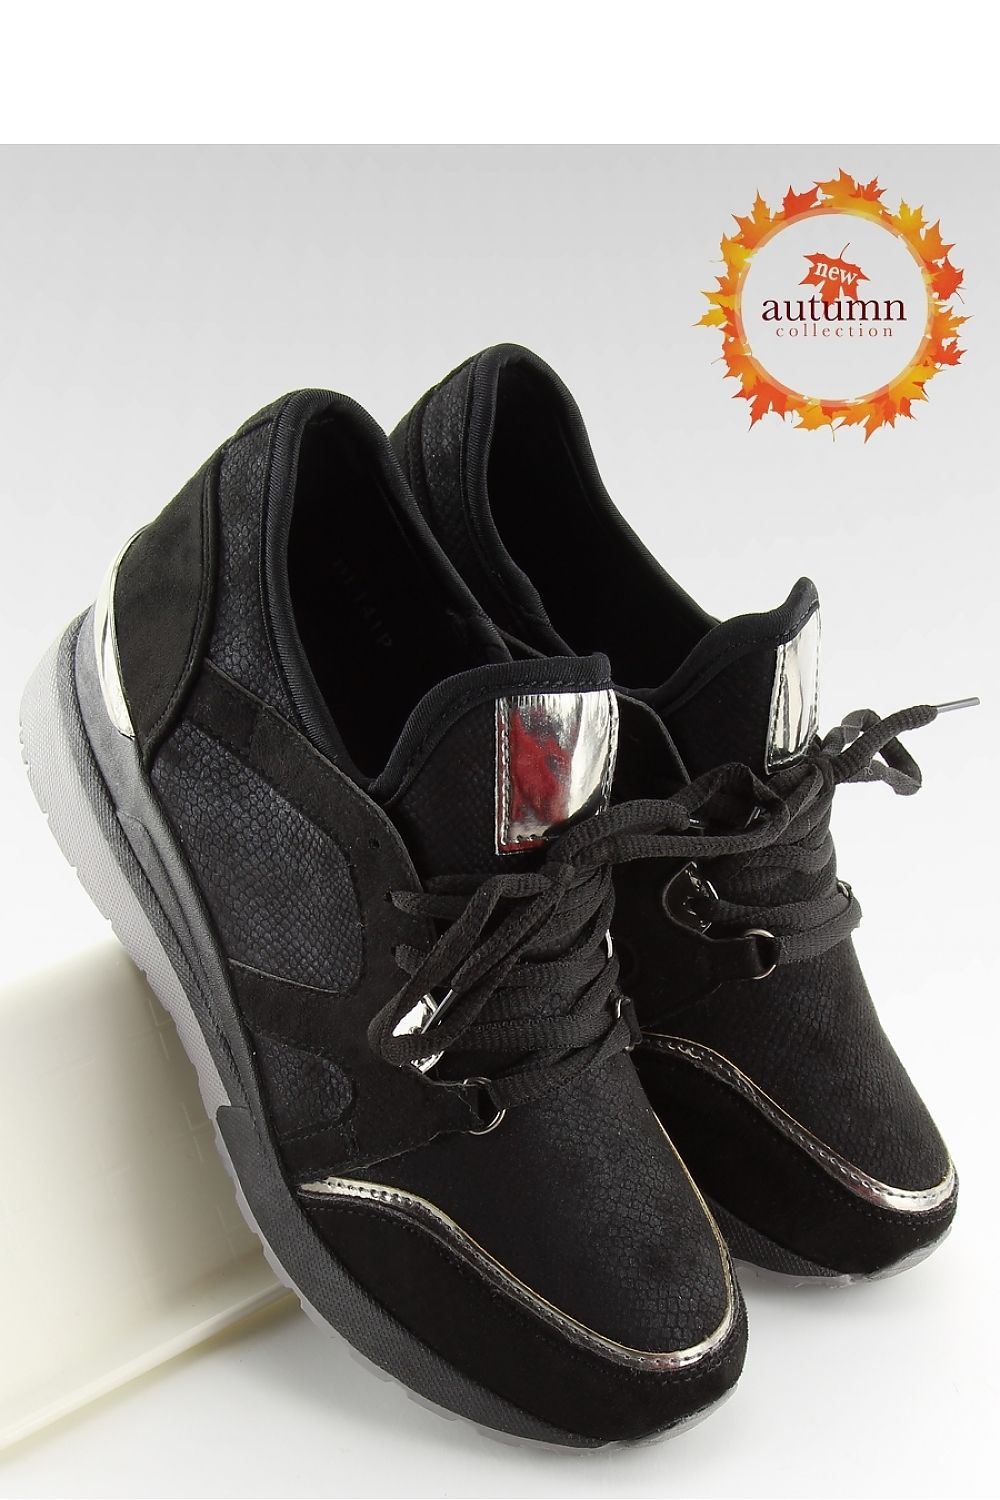 19e8f983be57 Sport Shoes model 122562 Inello Wholesale Clothing Online